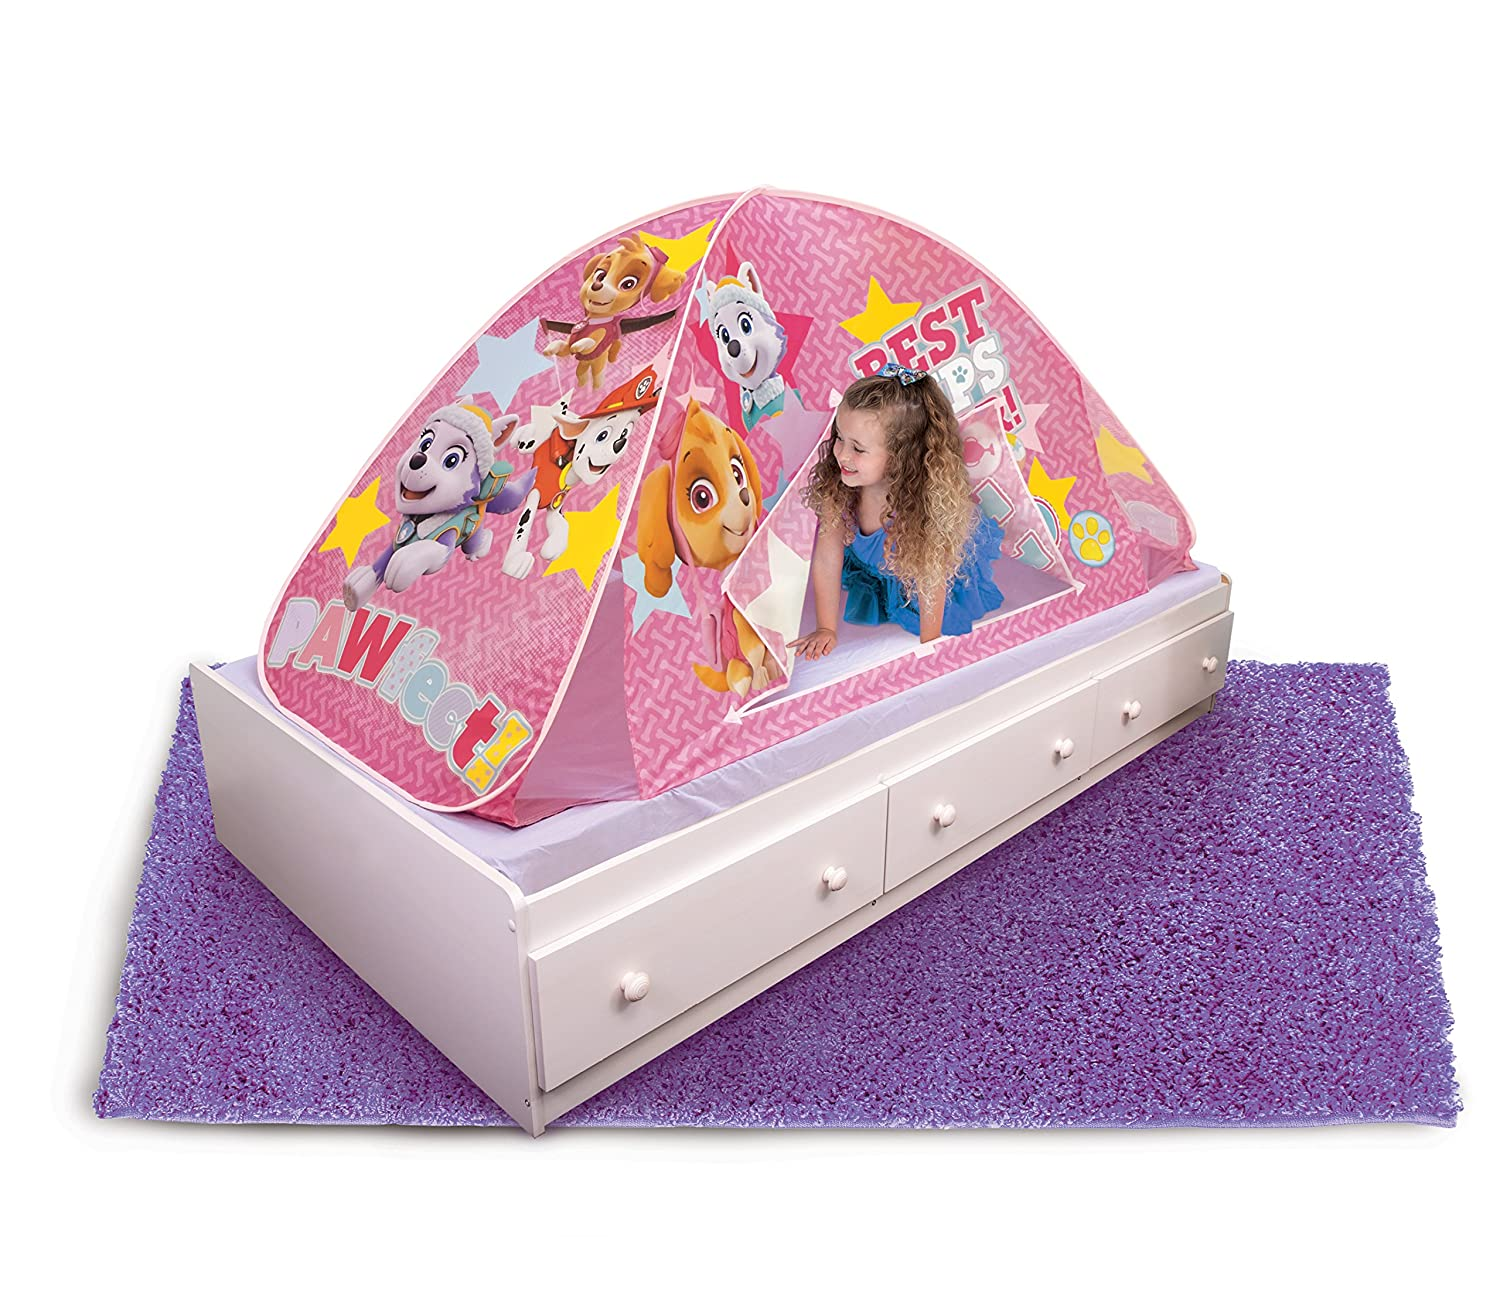 Paw Patrol 2 in 1 Tent Pink Playhut Bed Floor Tunnel Kids ...